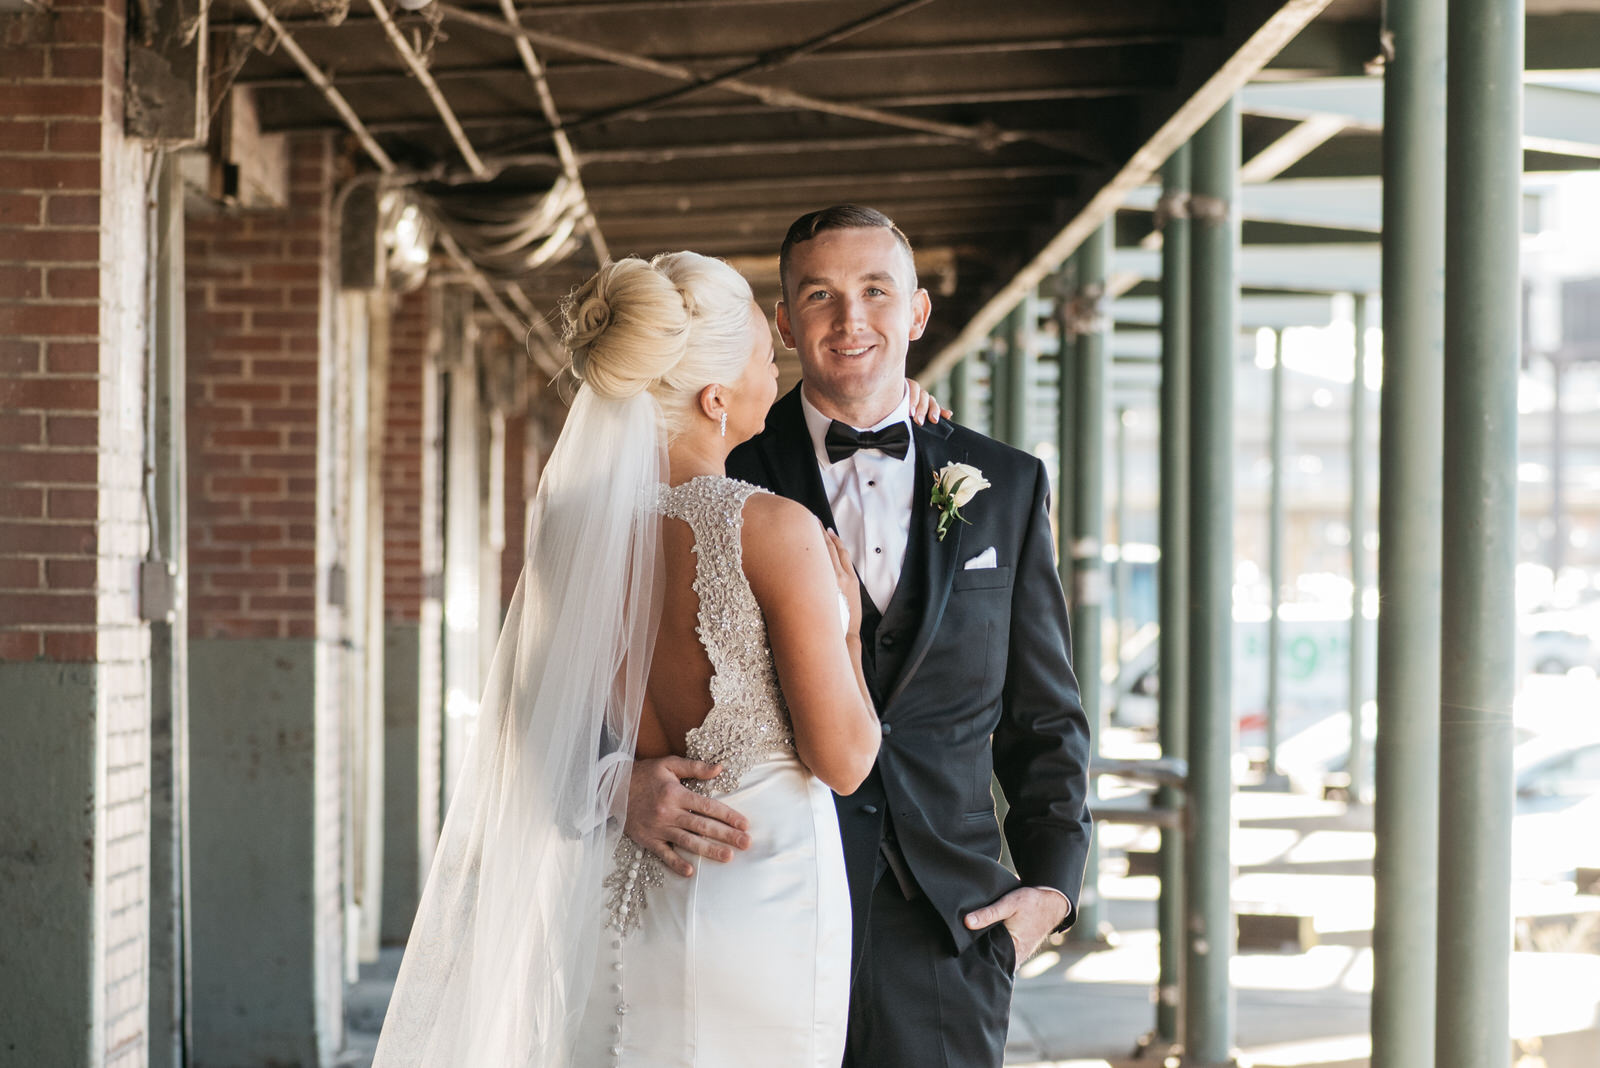 hilton_garden_inn_southpointe_pittsburgh_weddings_59.jpg